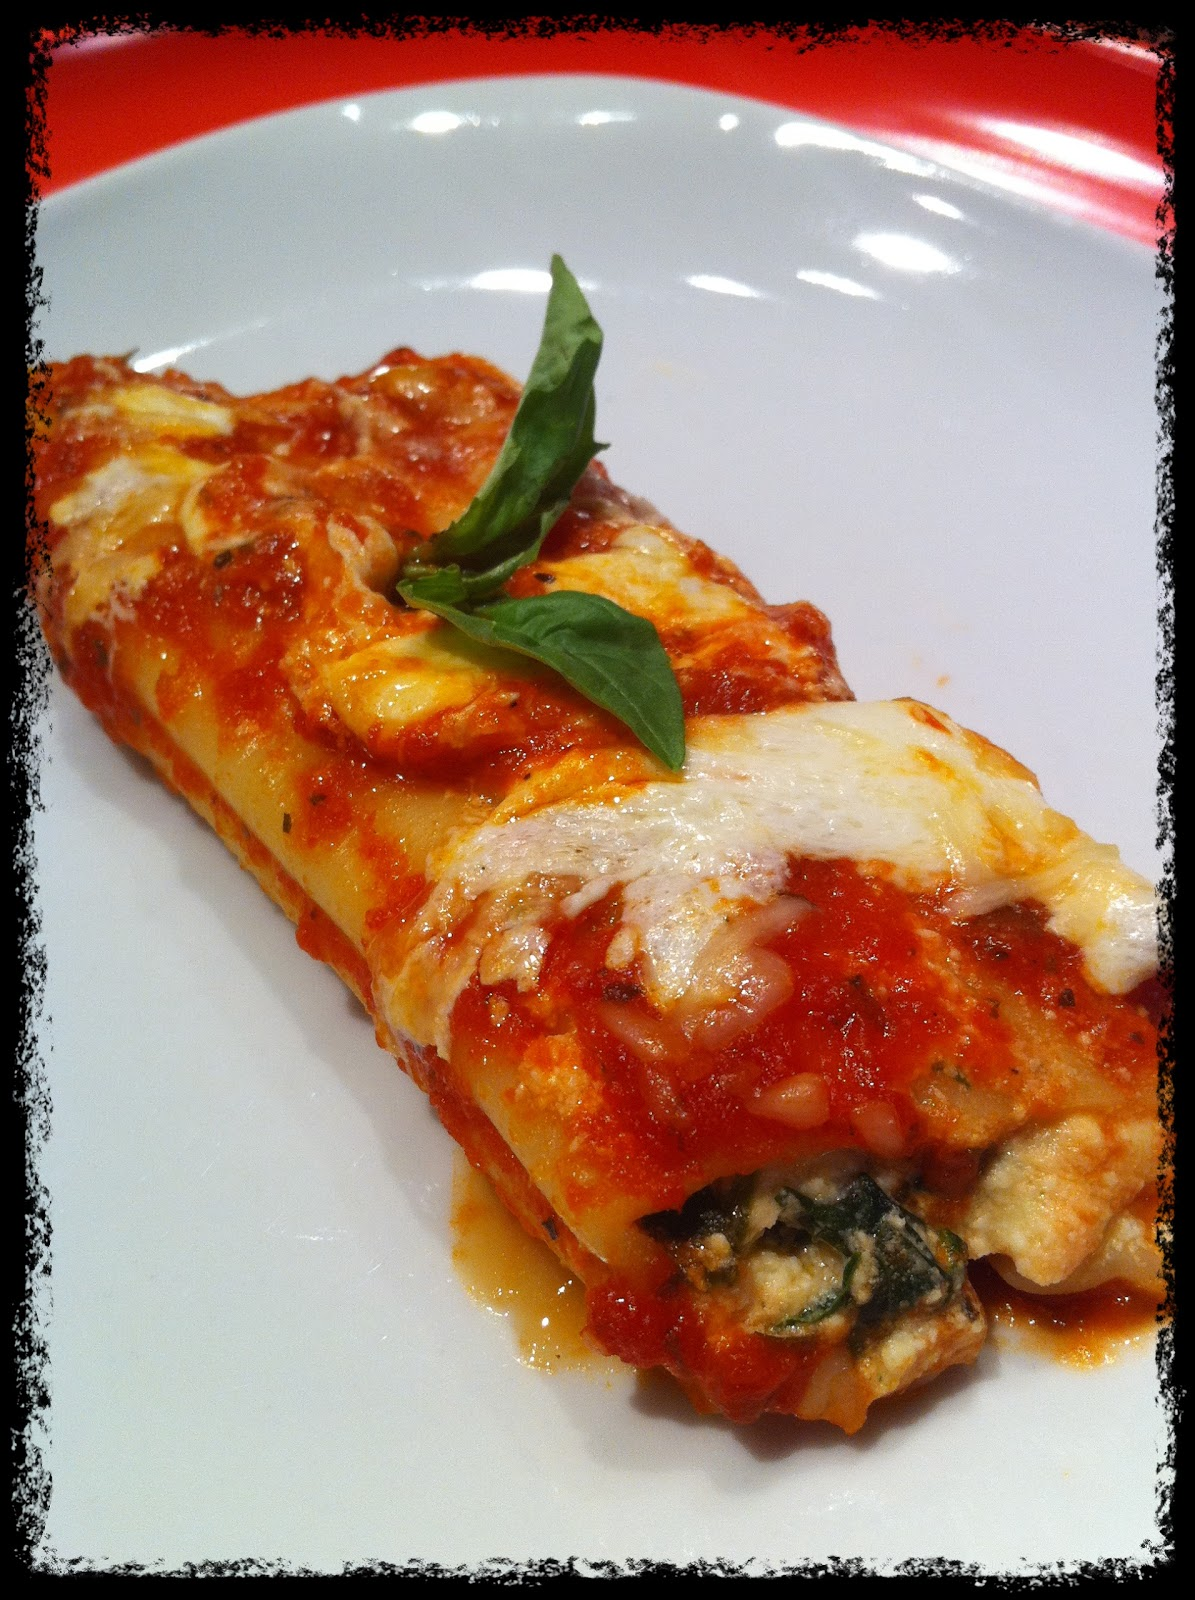 ... : Spinach, Mushroom & Italian Three Cheese Stuffed Manicotti